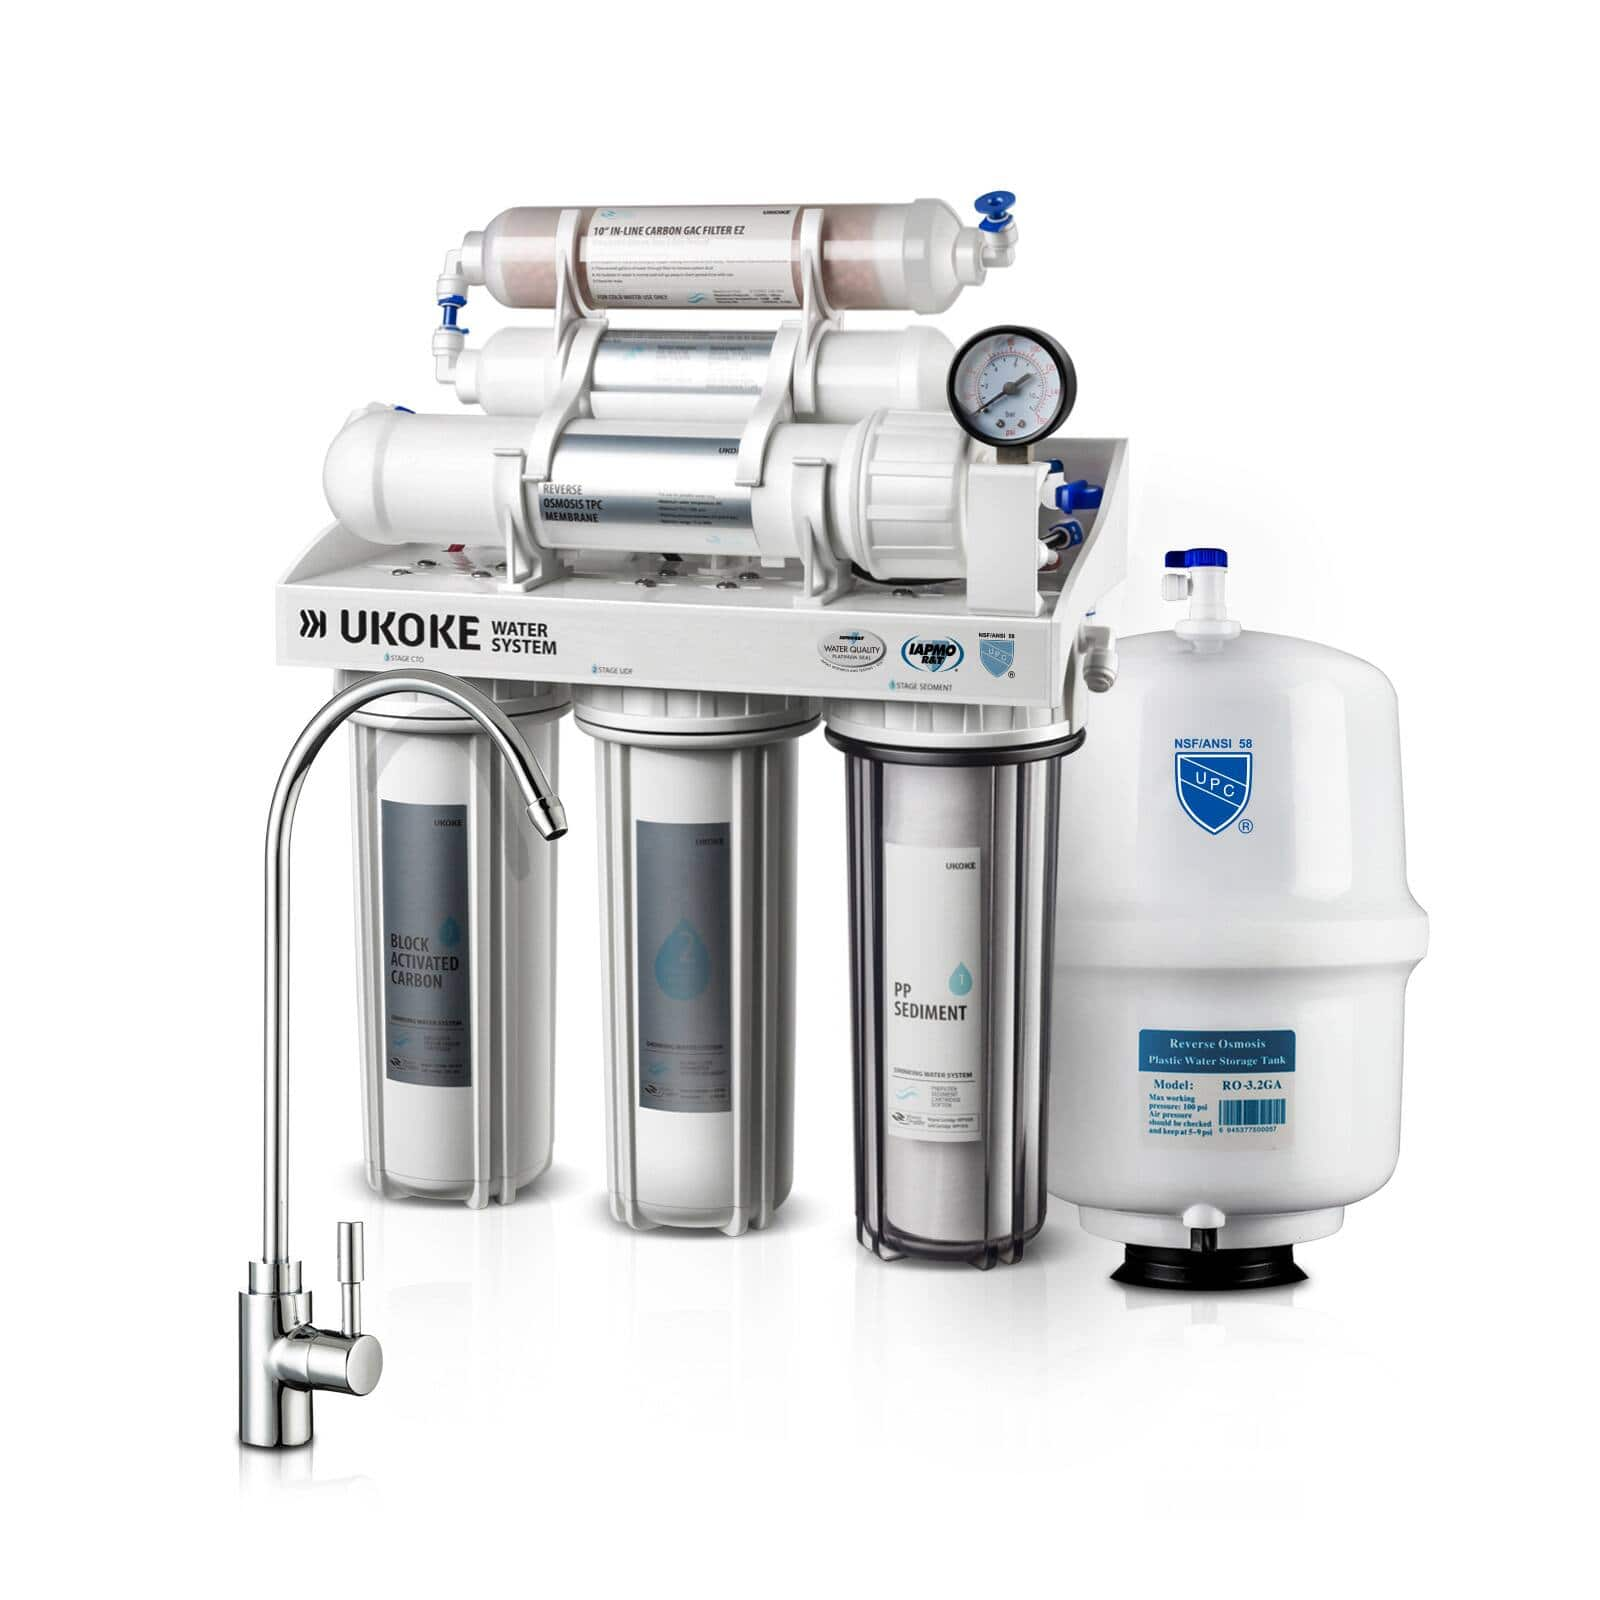 Ukoke 6 Stages Reverse Osmosis, Water Filtration System, 75 GPD $139 + FS